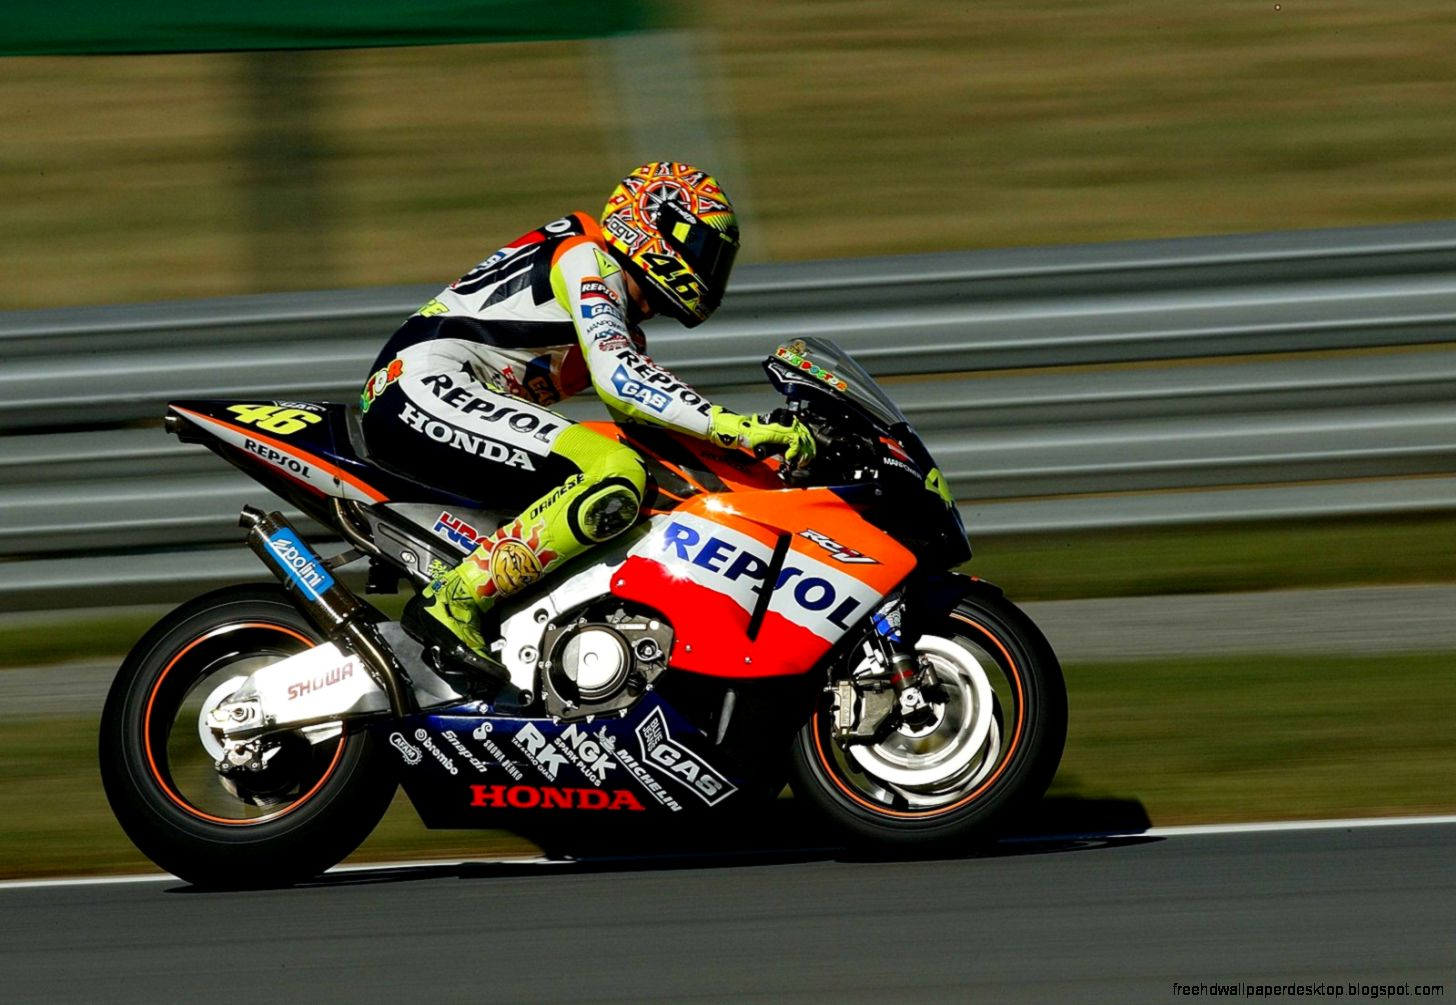 valentino rossi repsol honda hd wallpaper gallery. Black Bedroom Furniture Sets. Home Design Ideas